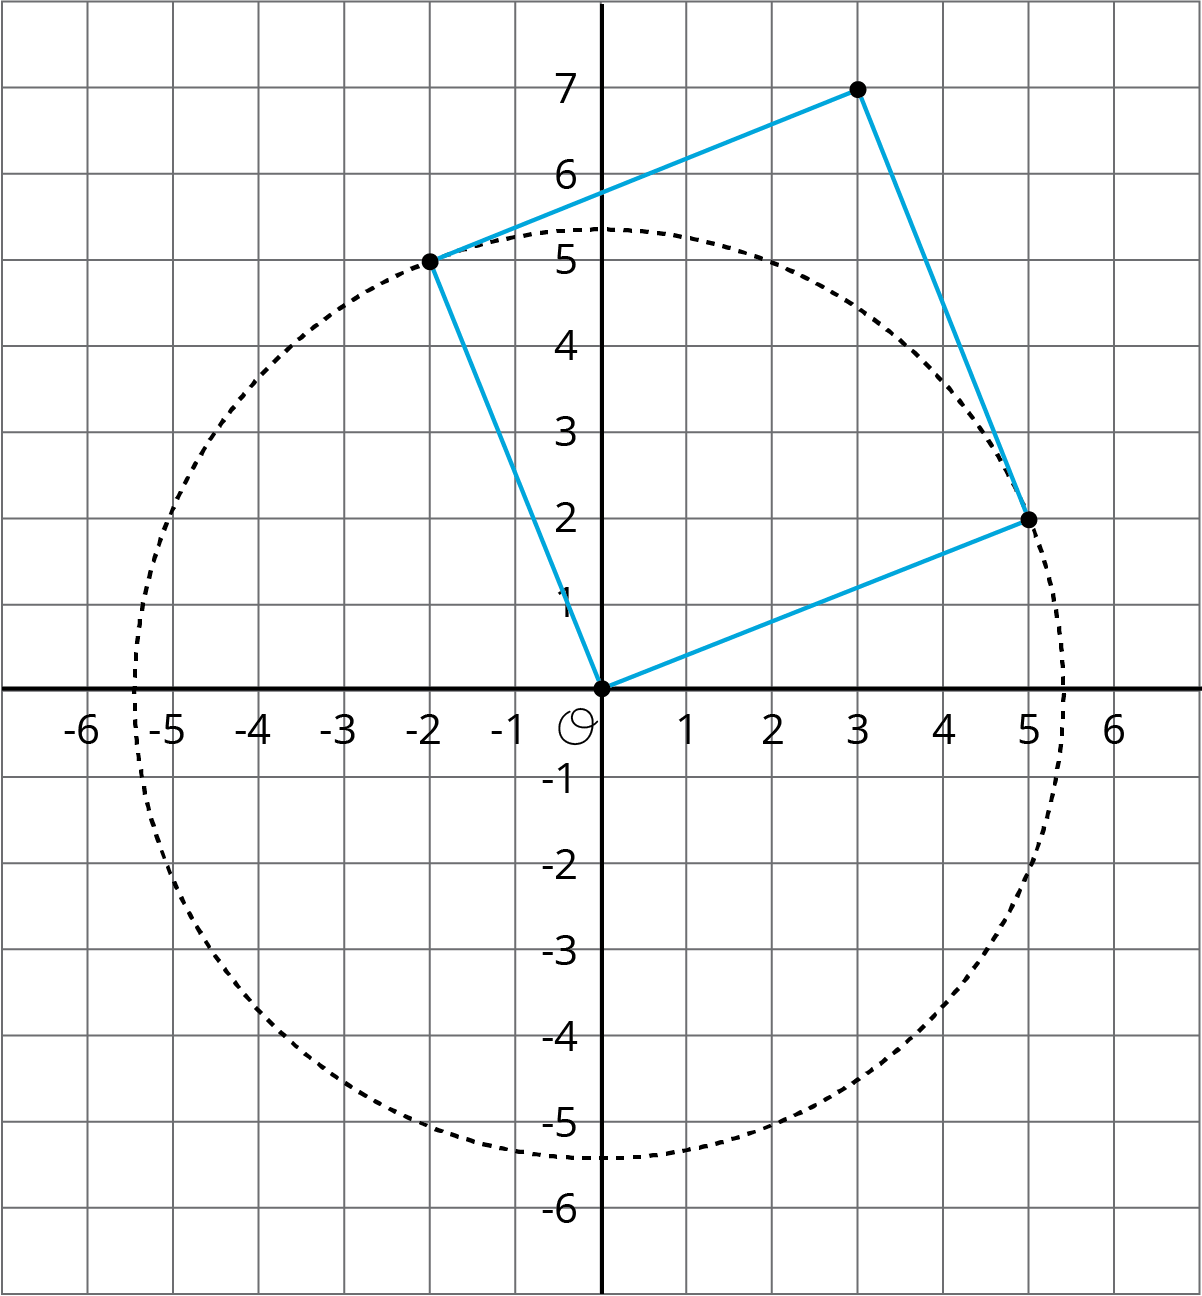 """A coordinate grid with the origin labeled """"O."""" The x-axis has the numbers negative 6 through 6 indicated with gridlines. The y-axis has the numbers negative 6 through 7 indicated with gridlines. A square and a circle are drawn on the grid so that the circle's circumference passes through 2 of the squares vertices. The circle's center is the origin and it's circumference is indicated by a dashed line that passes through the following approximate points on the axes: Negative 5 point 3 comma 0, 0 comma 5 point 3, 5 point 3 comma 0, and 0 comma negative 5 point 3. The square is tilted so that all its sides are diagonal to the coordinate grid. It has vertices at: 0 comma 0, negative 2 comma 5, 3 comma 7, and 5 comma 2. The circumference of the circle passes through the square's vertices at negative 2 comma 5 and 5 comma 2 so that the sides of the square, extending from the origin to those 2 vertices, are within the circle."""